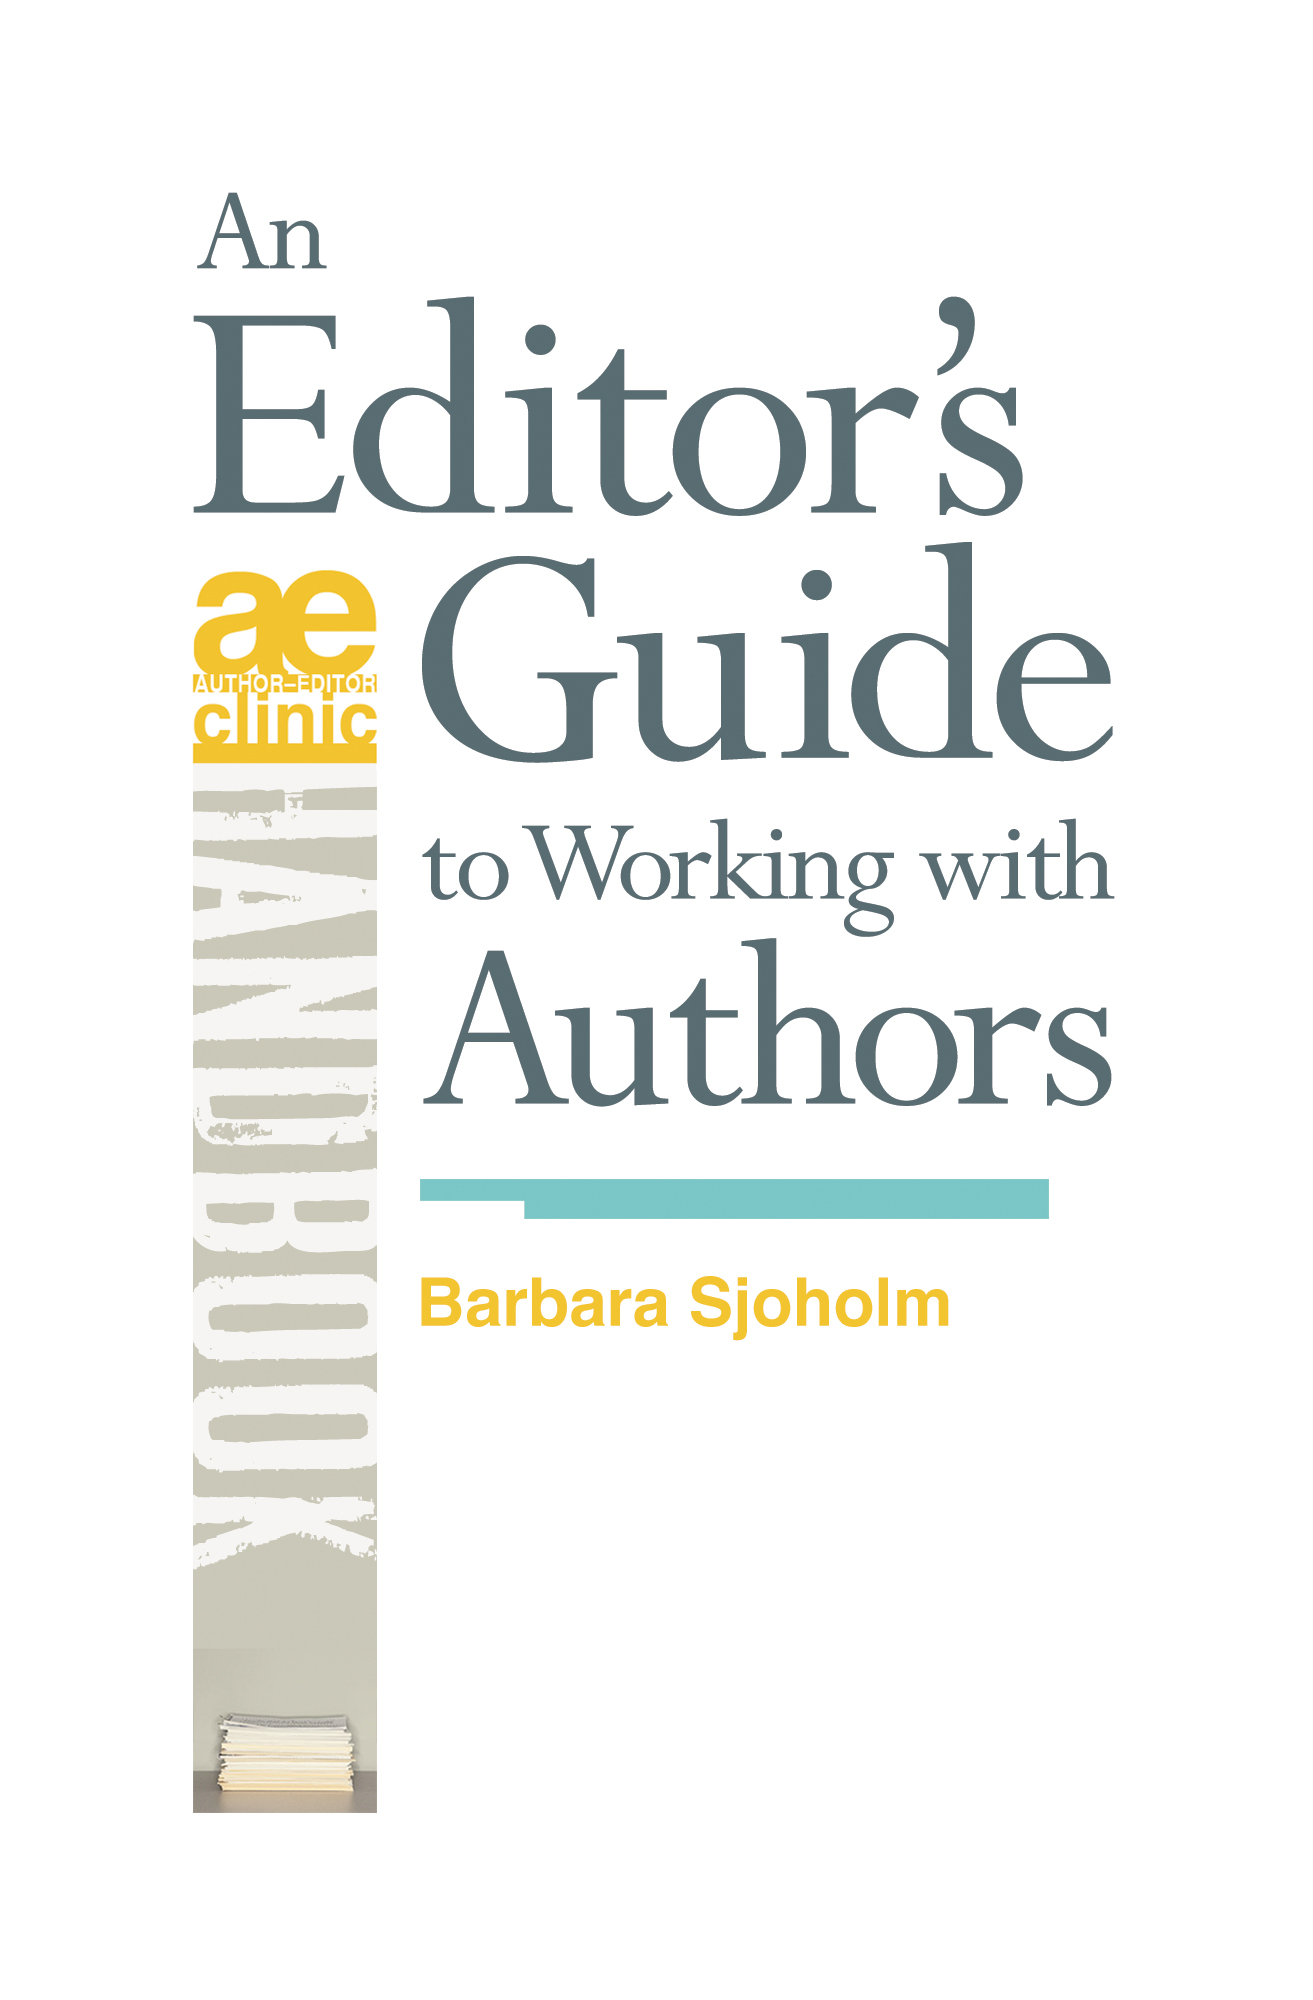 An Editor's Guide to Working with Authors